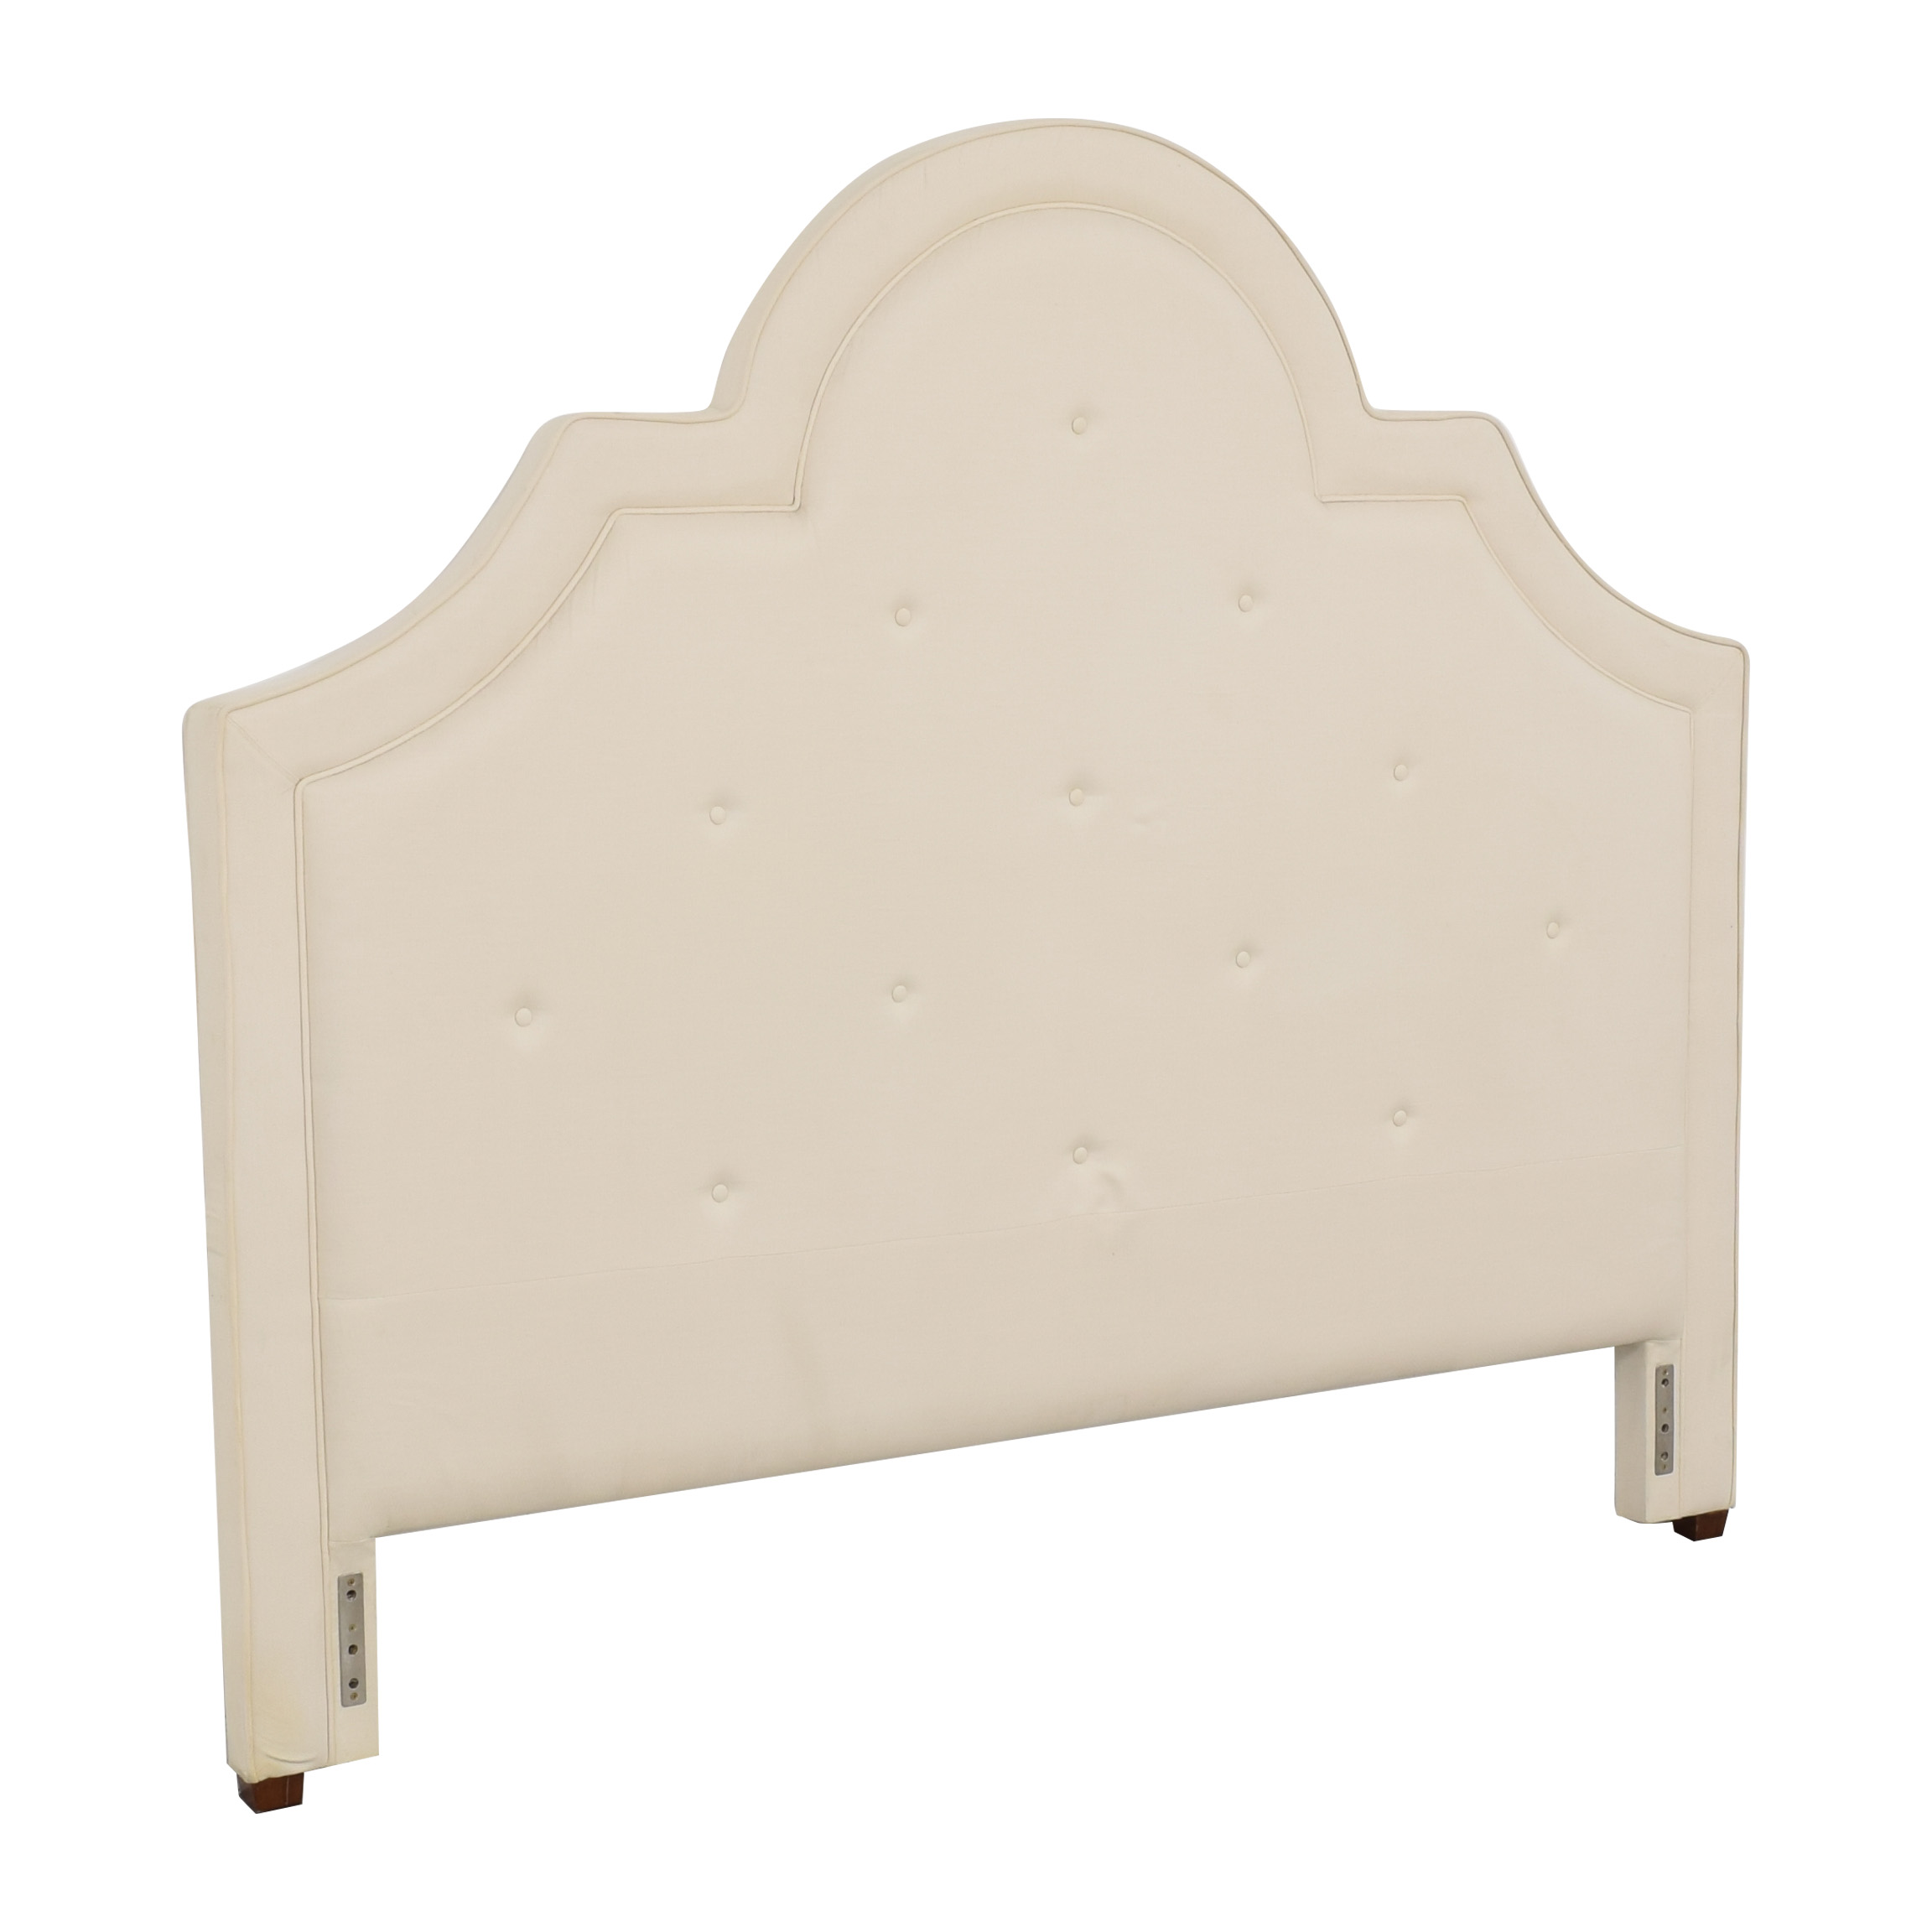 Pottery Barn Pottery Barn York Tufted King Headboard pa